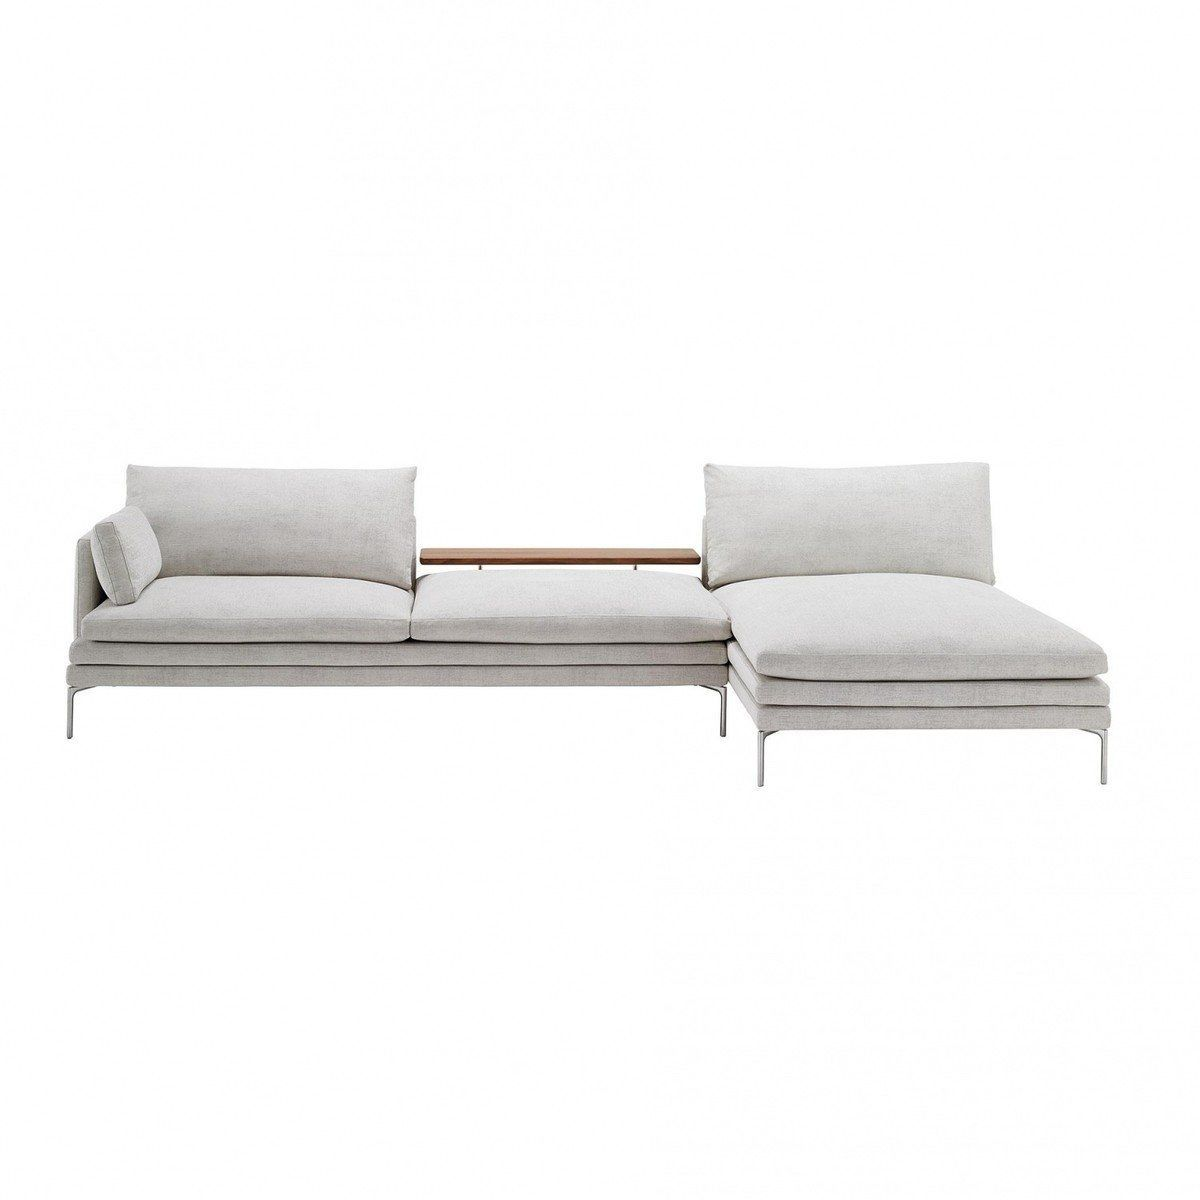 William sofa with chaise longue zanotta for Sofas chaise longue